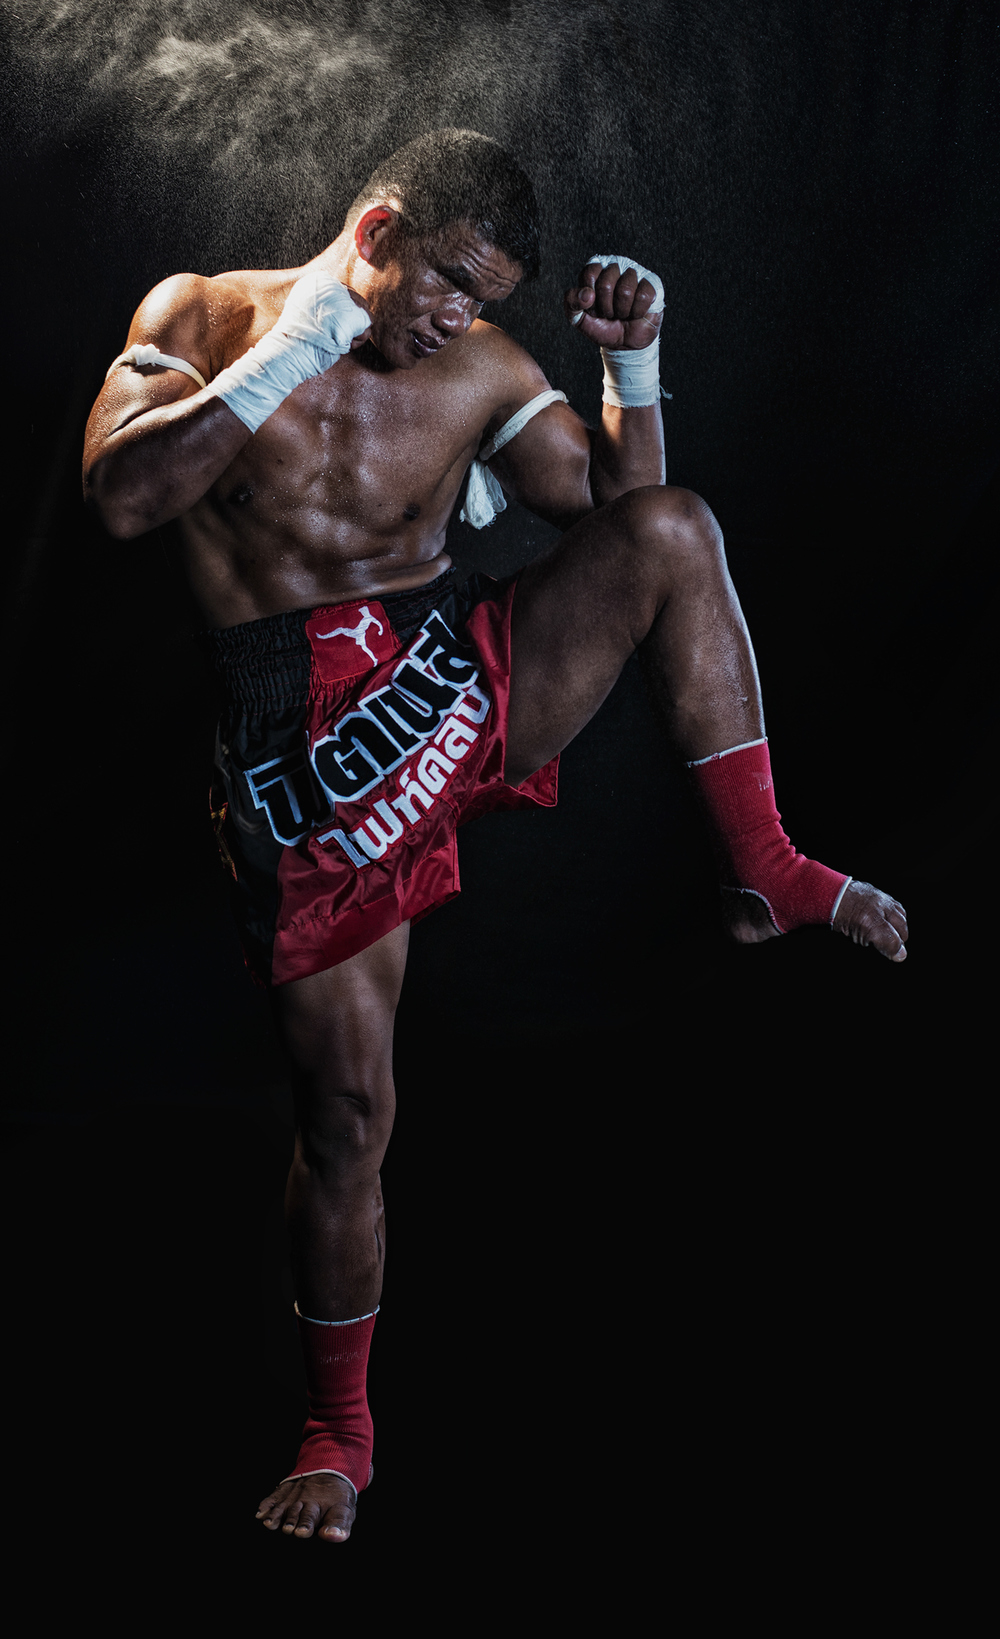 muay thai_martial arts photography